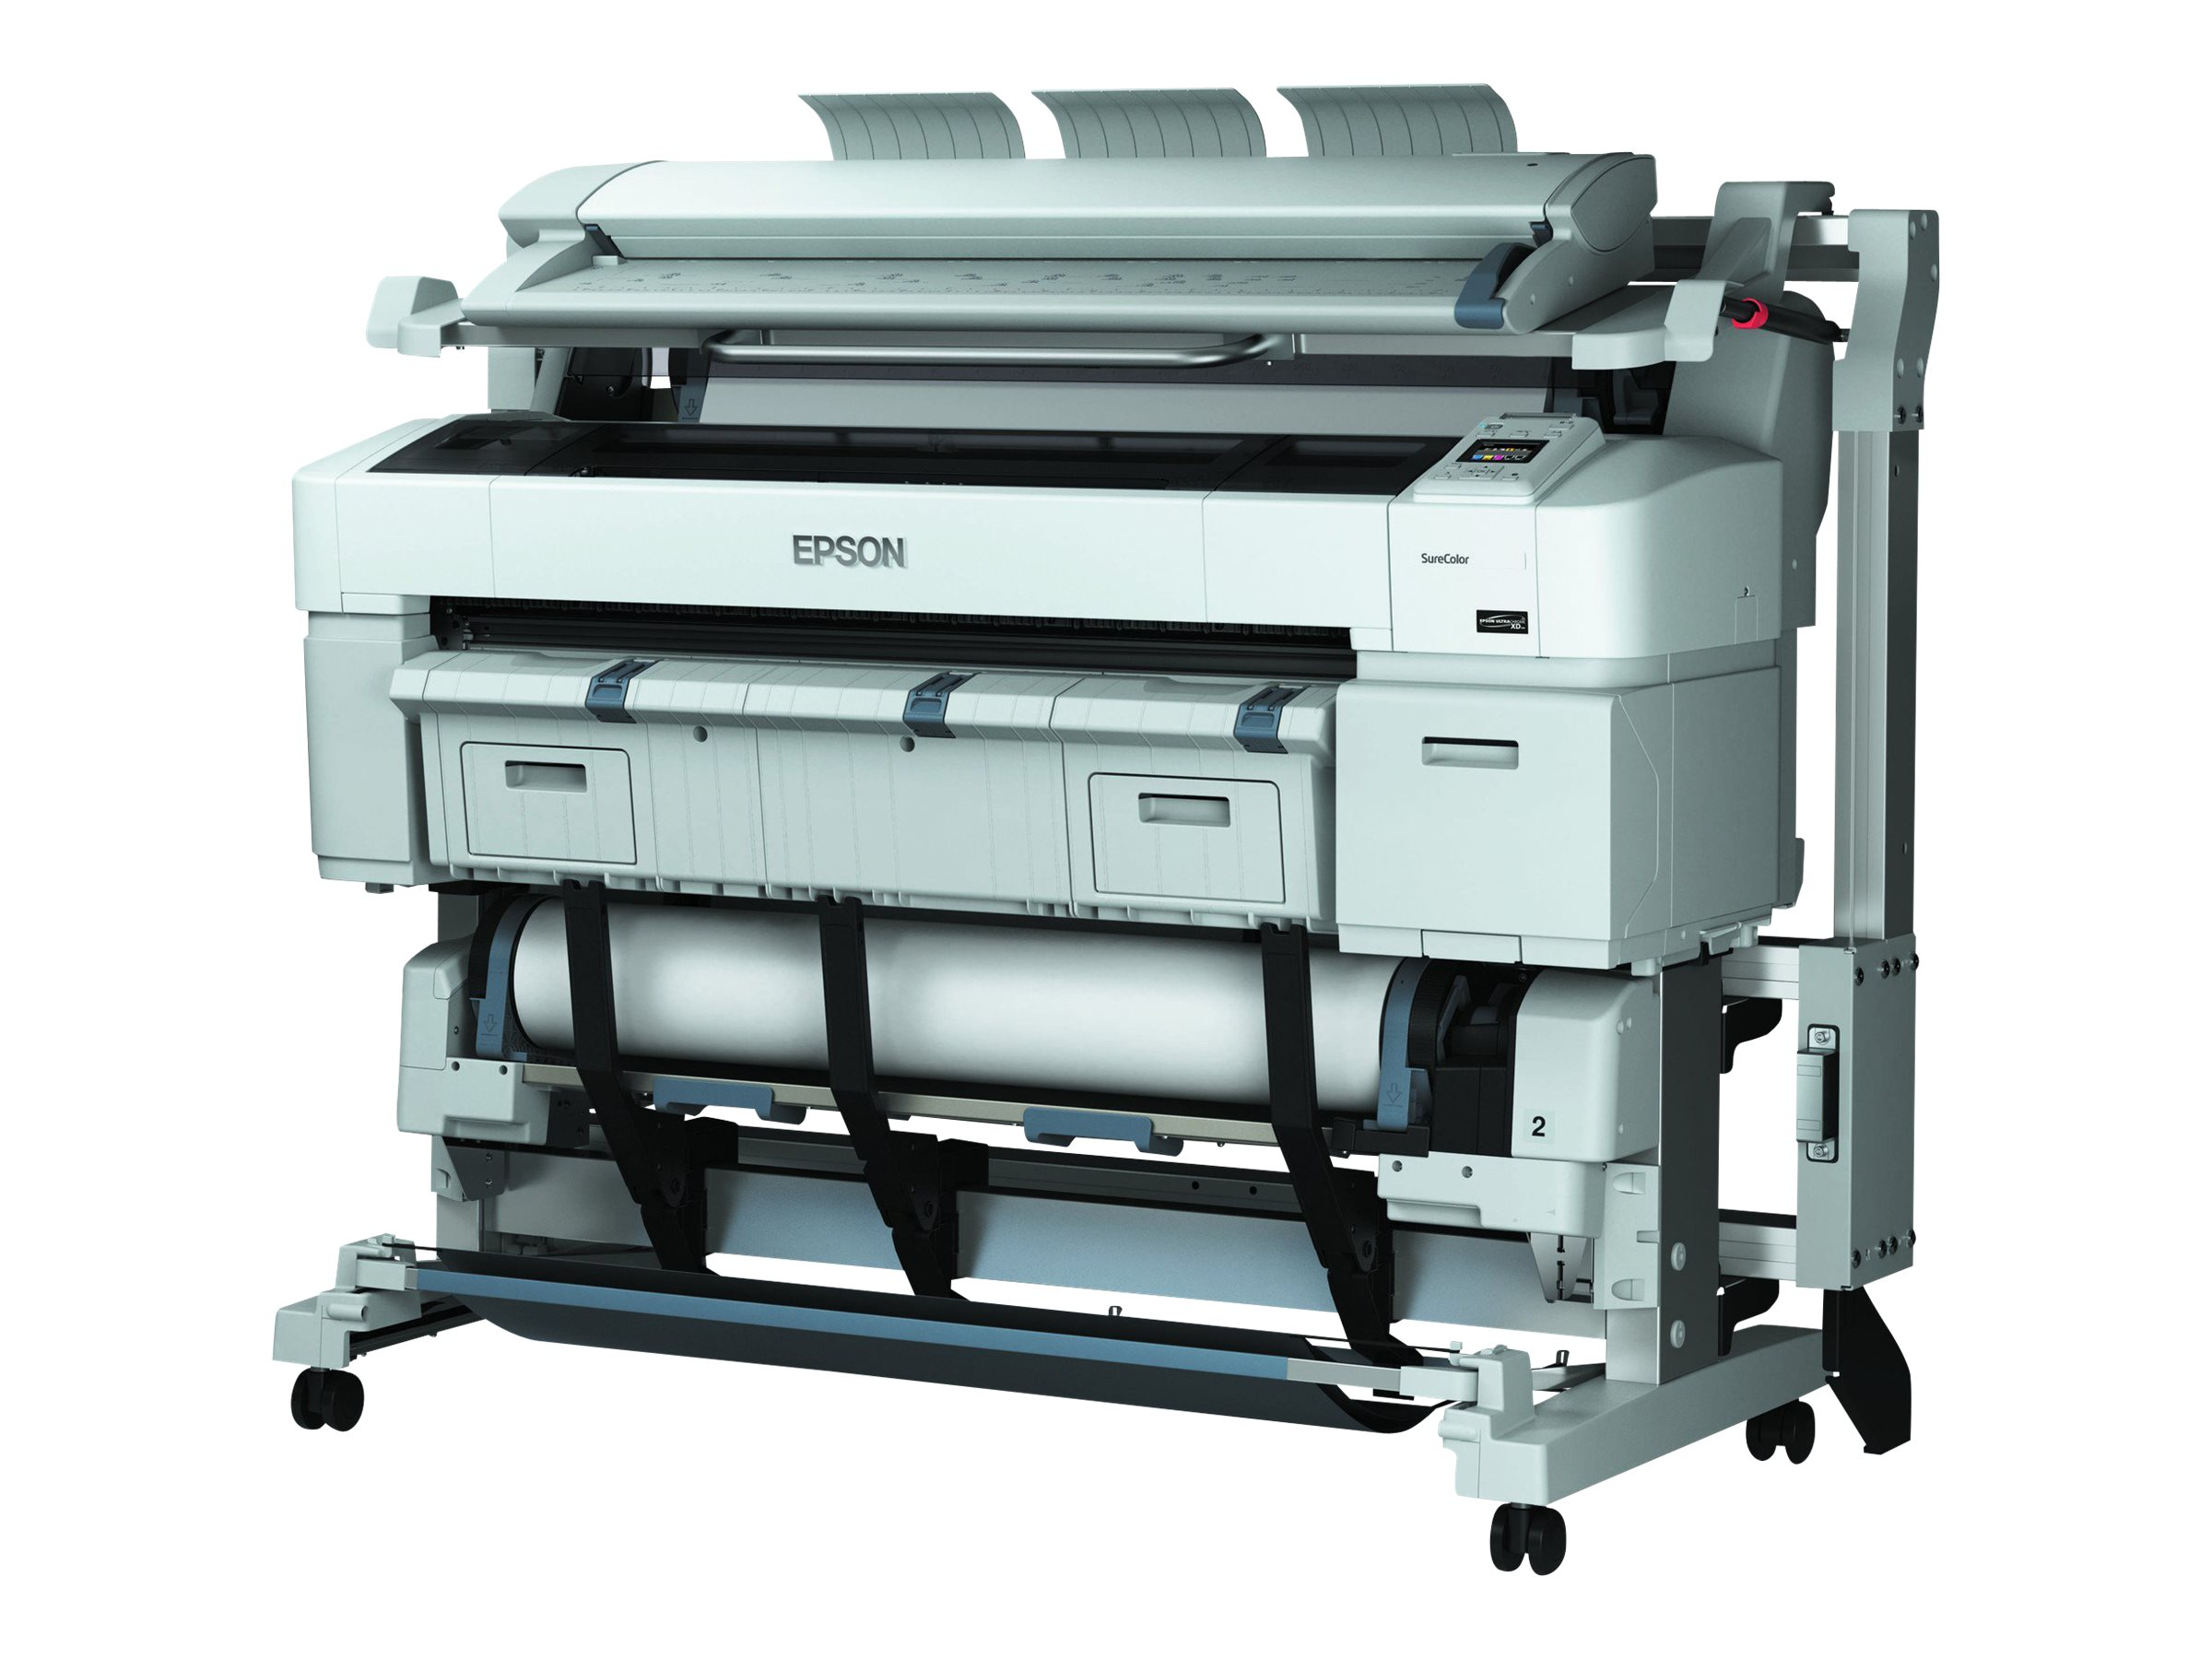 Epson KSC11A - MFP-Option - 153 x 2438.4 mm - 600 dpi x 600 dpi